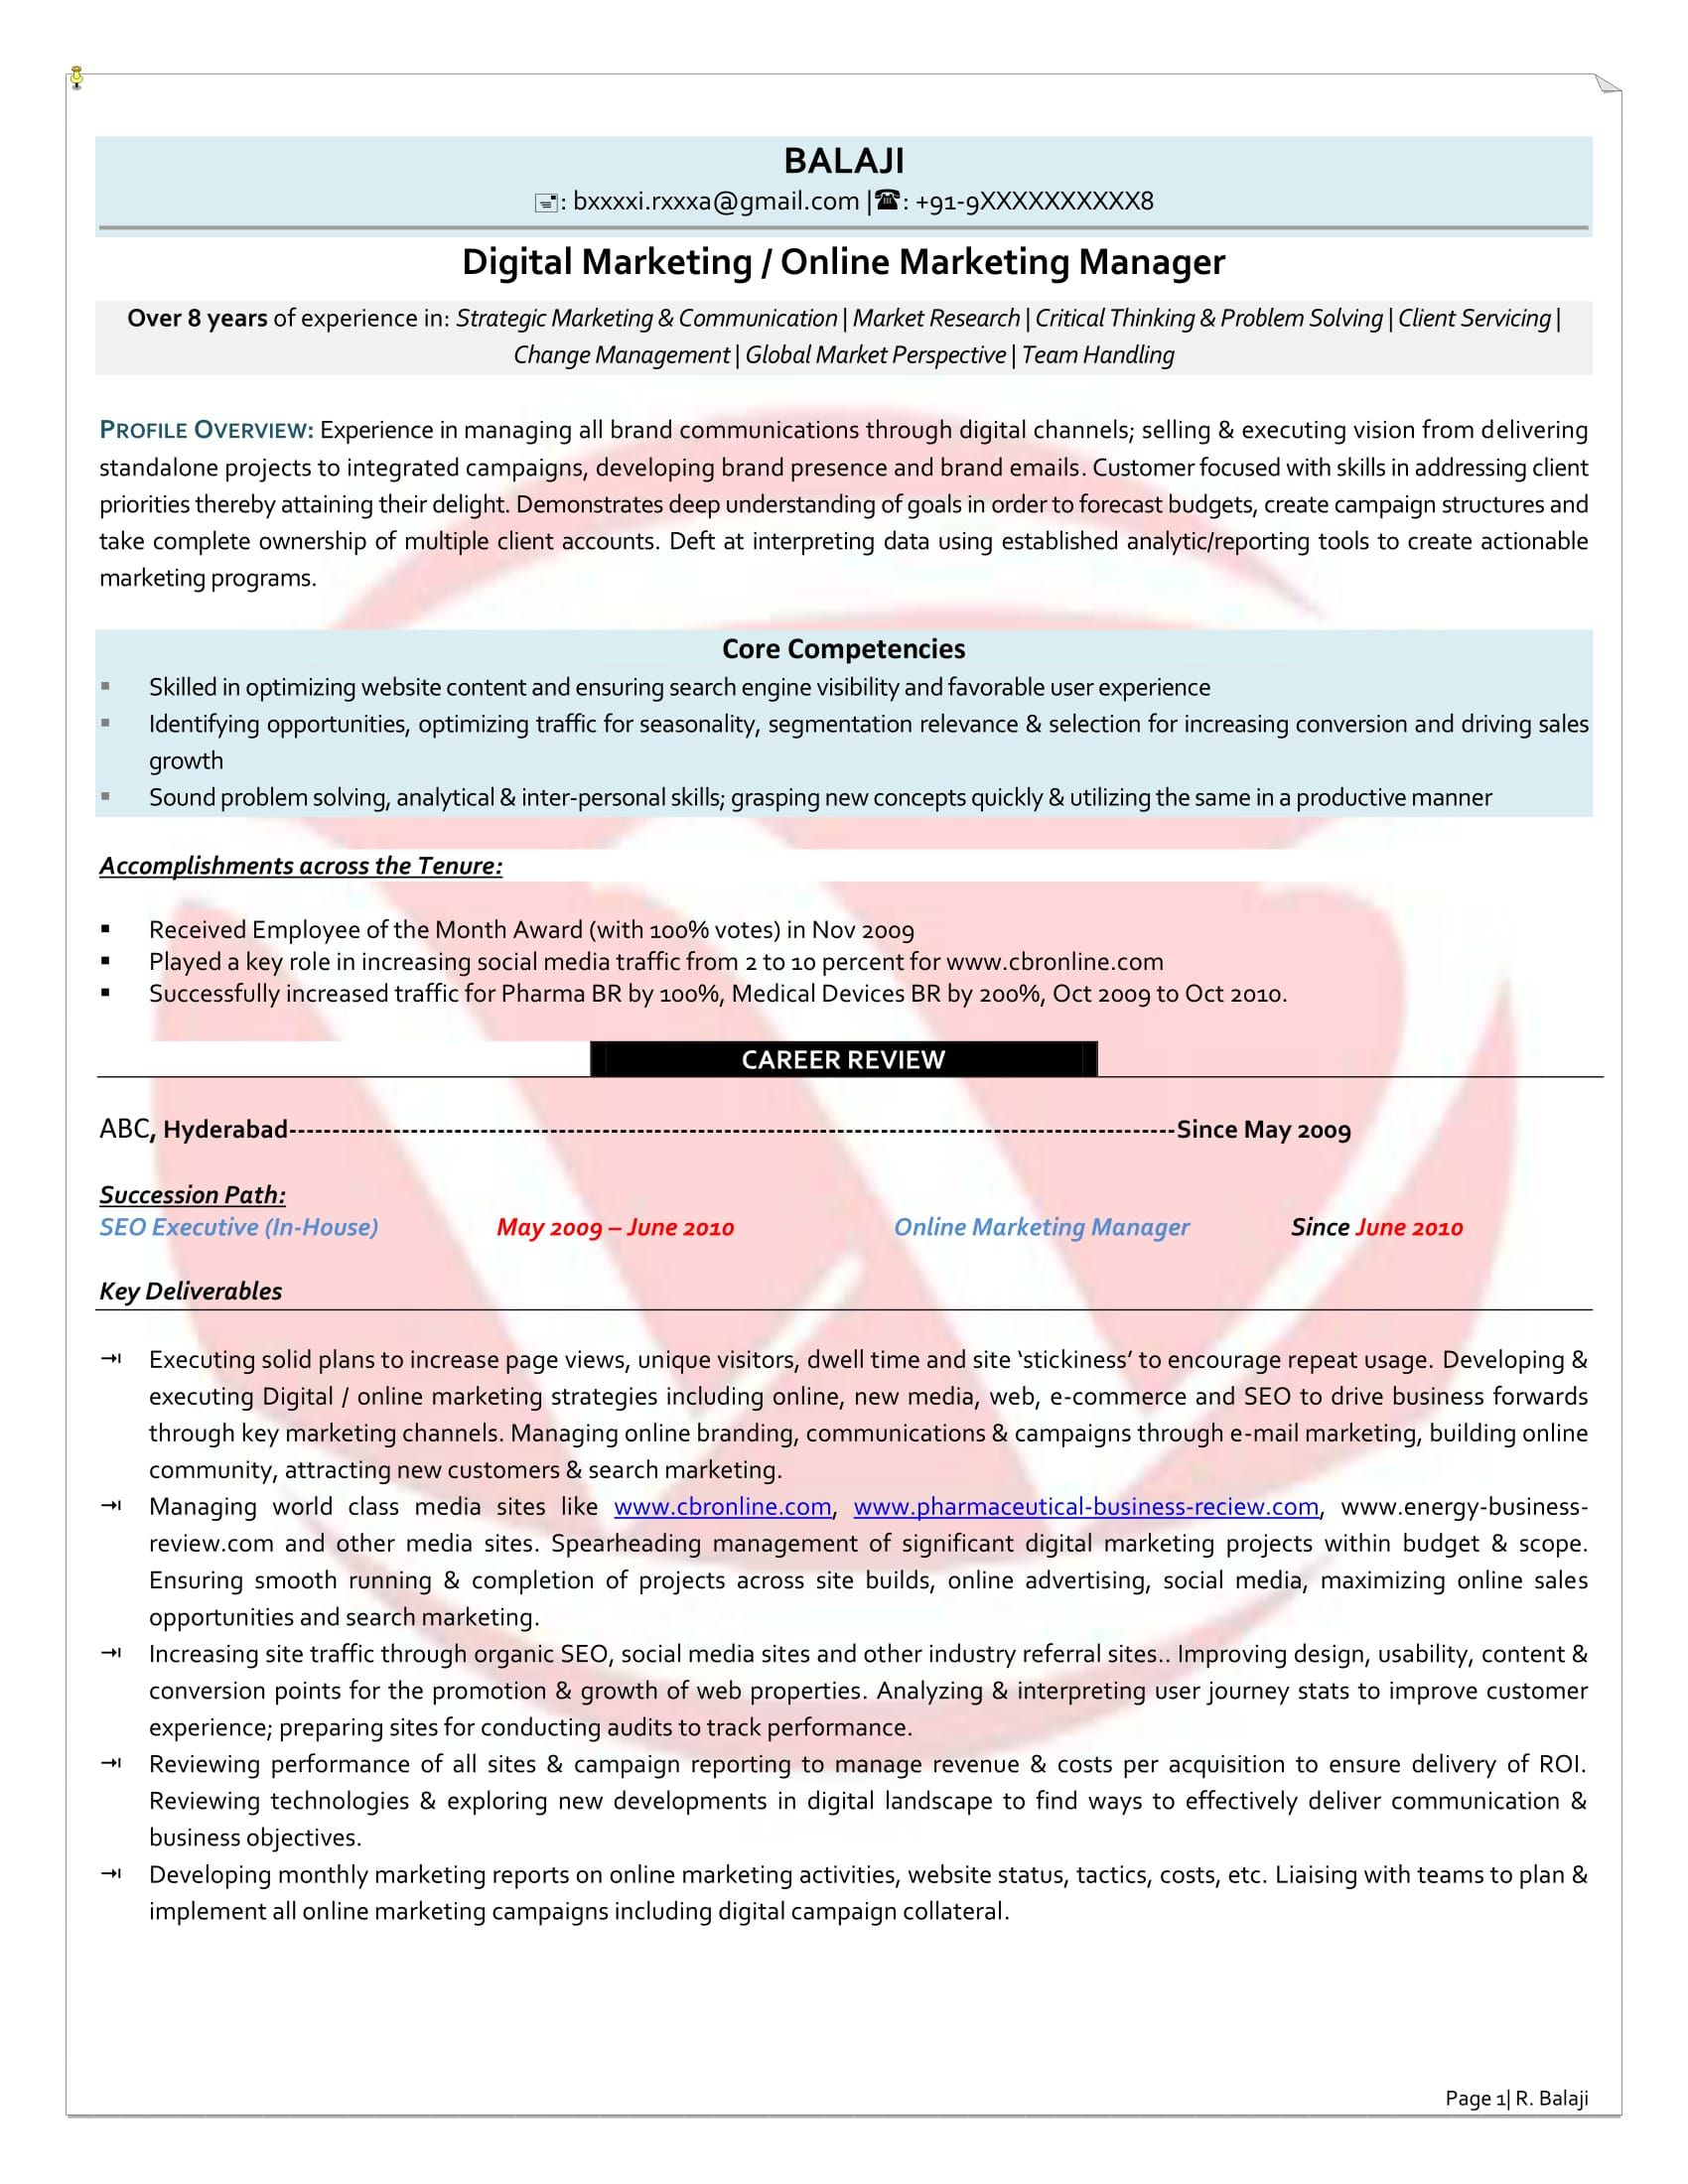 8 years resume format digital marketing manager